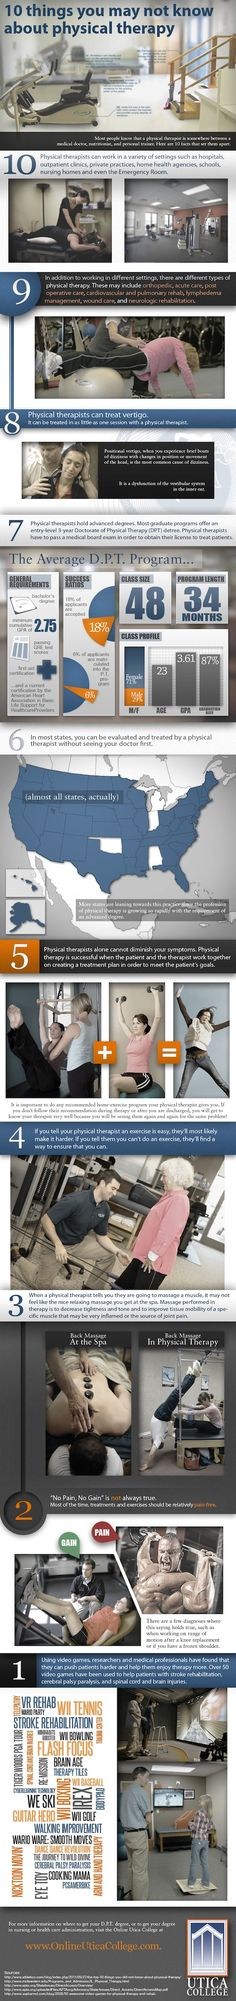 10 Things You May Not Know About Physical Therapy. Repinned by SOS Inc. Resources.  Follow all our boards at http://Pinterest.com/sostherapy for therapy resources.